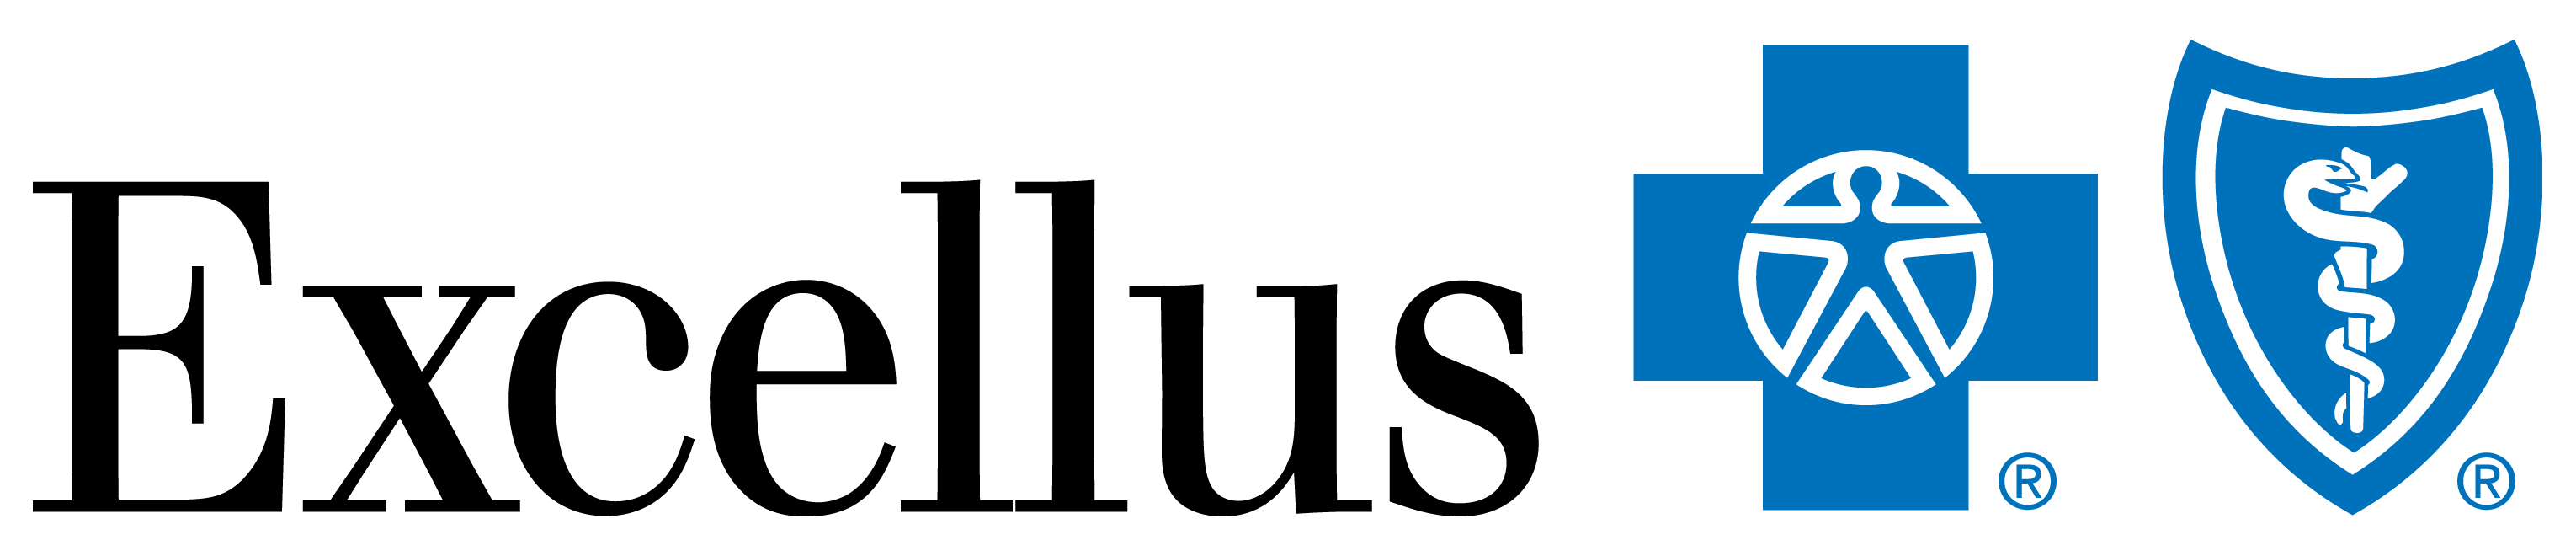 Excellus_color